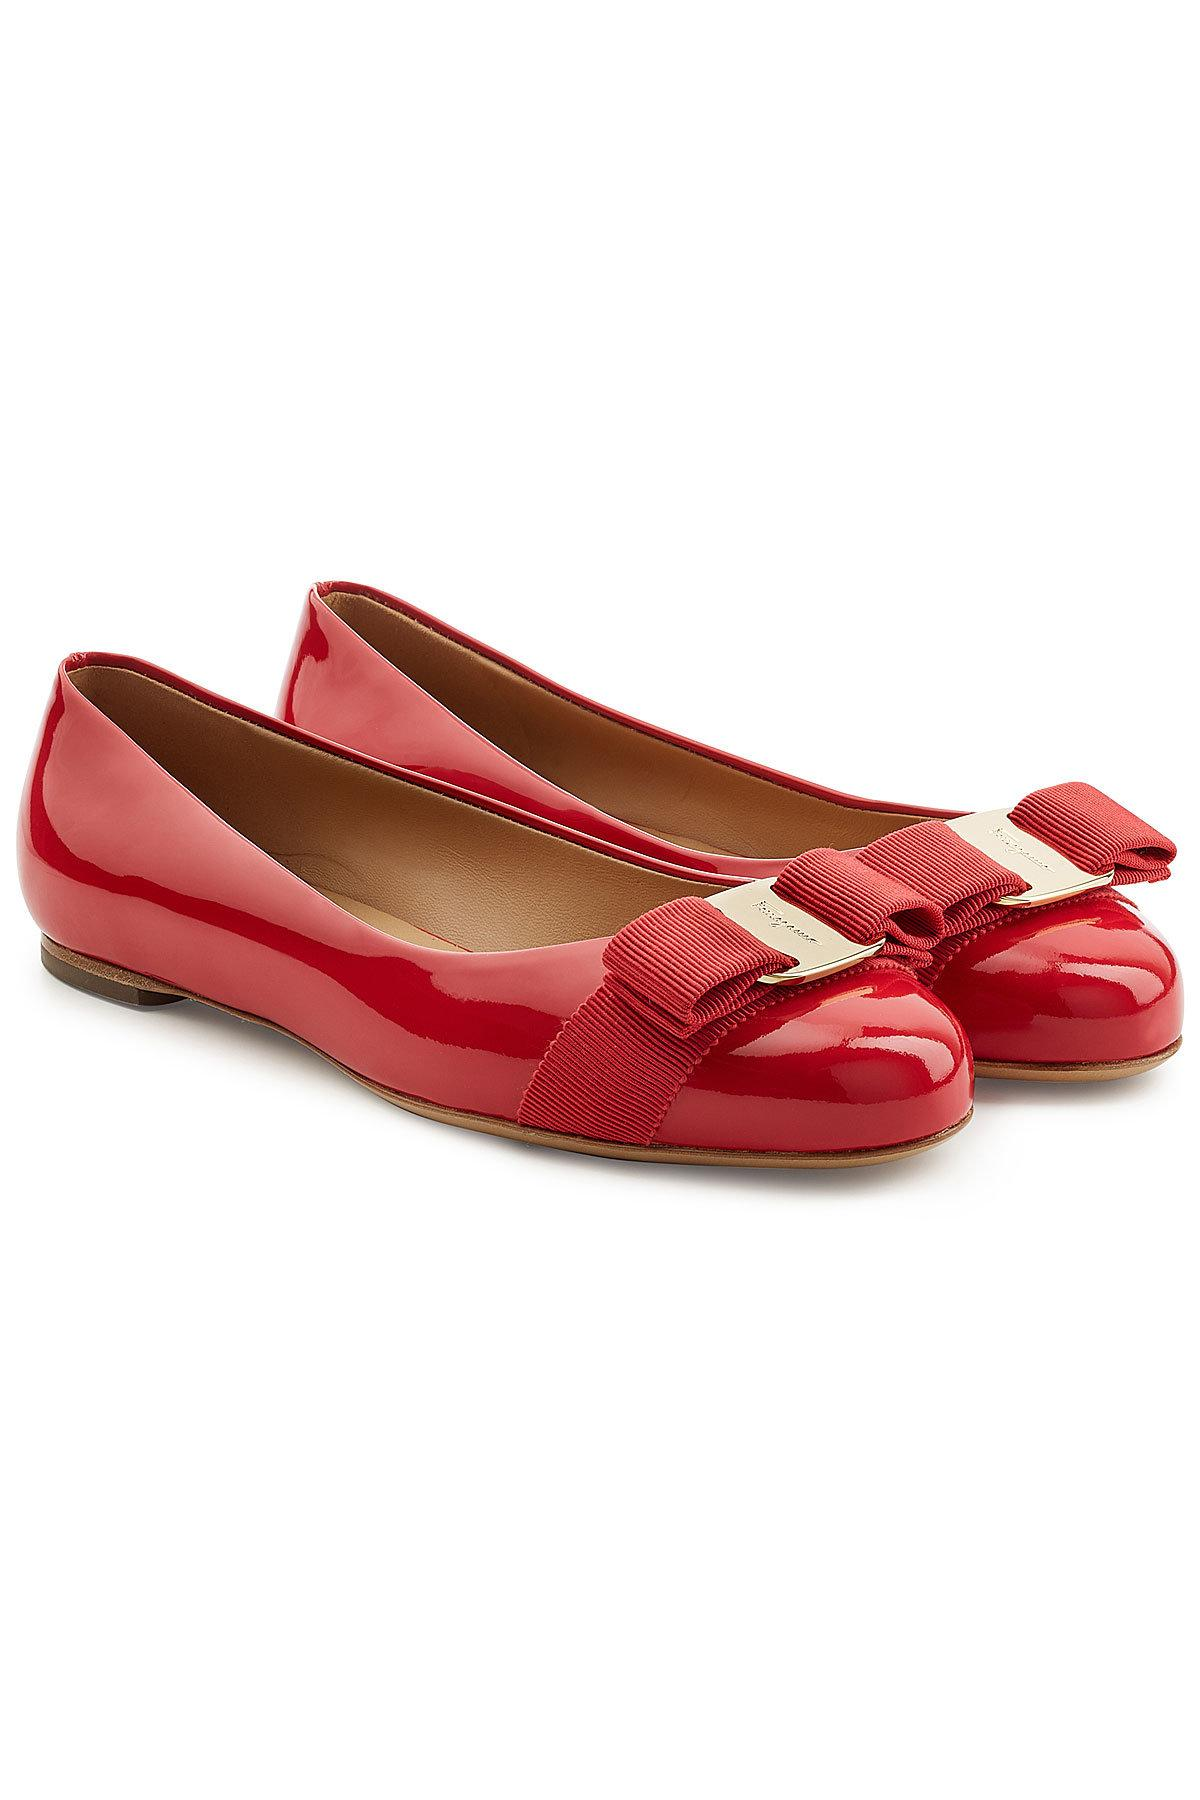 Salvatore Ferragamo Varina Patent Leather Ballet Flats In Red